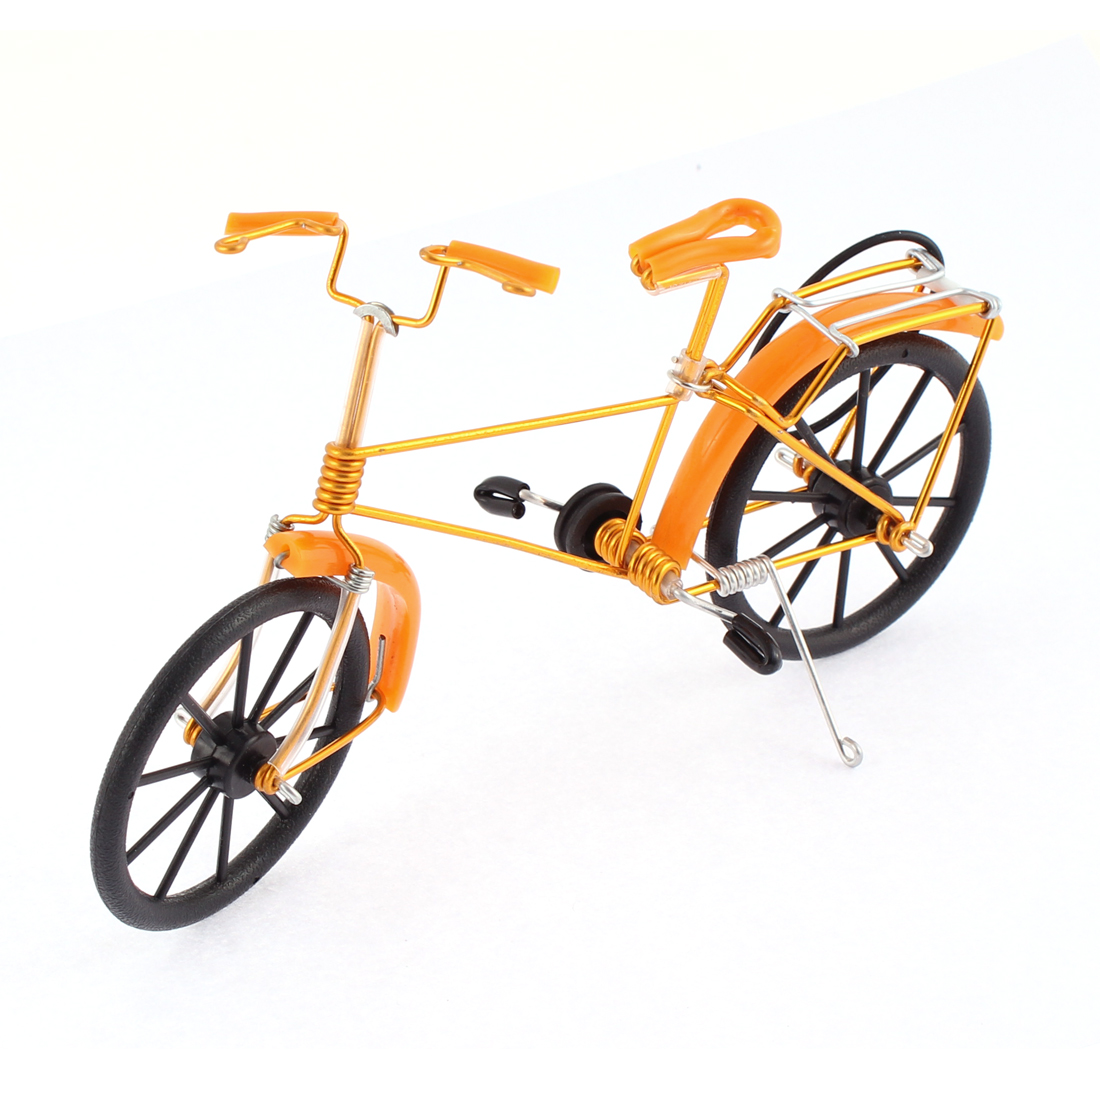 Cycling Collection Handmade Wire Bicycle Bike Model Home Decor Orange